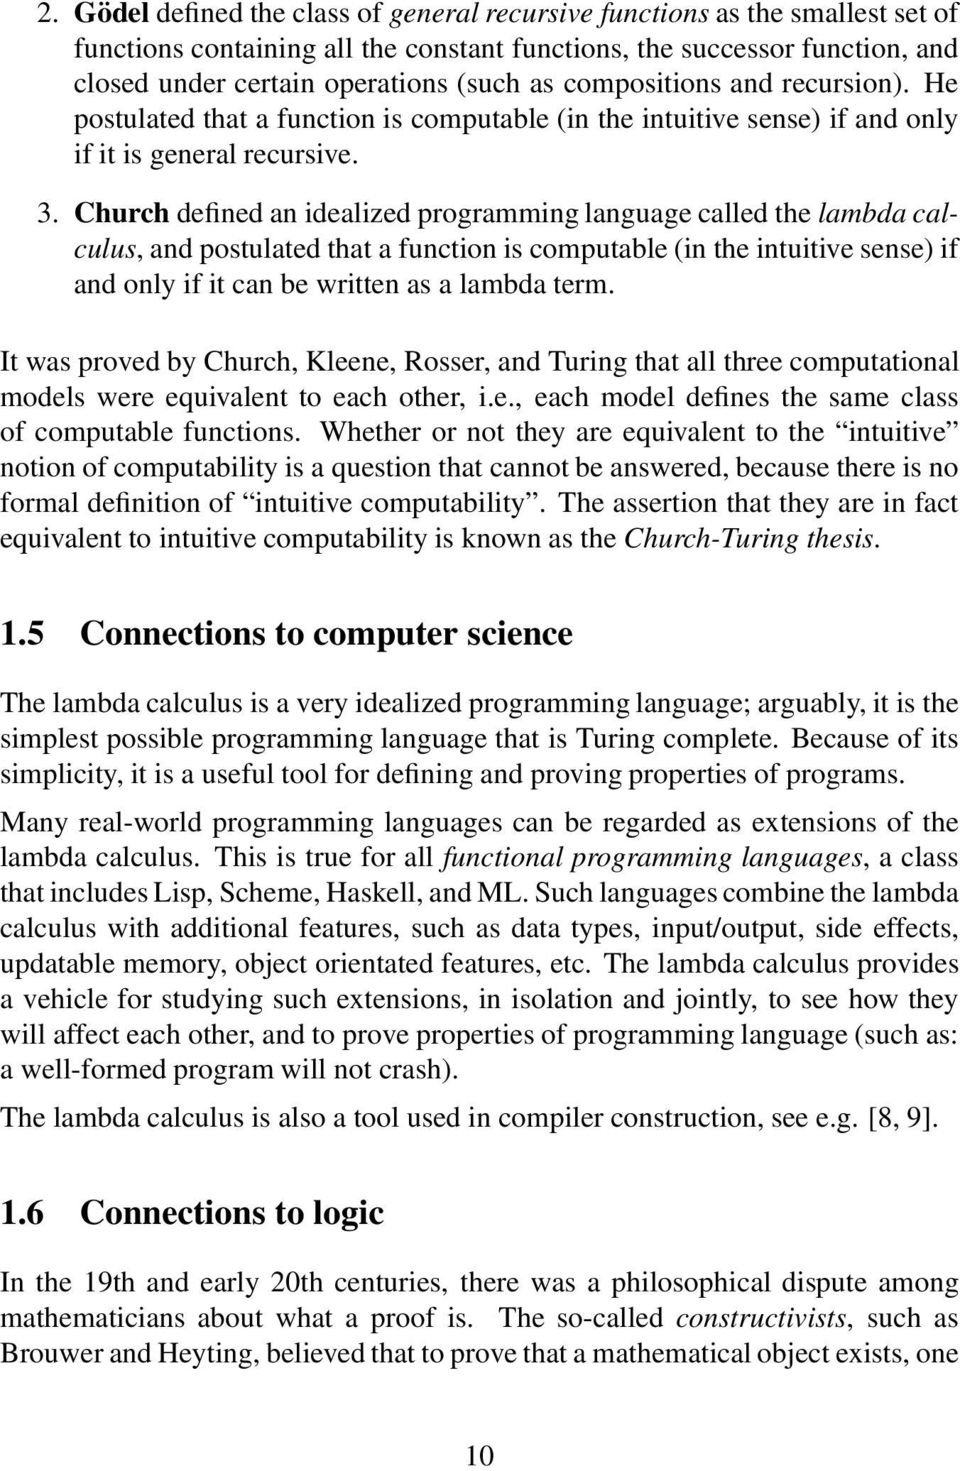 Church defined an idealized programming language called the lambda calculus, and postulated that a function is computable (in the intuitive sense) if and only if it can be written as a lambda term.